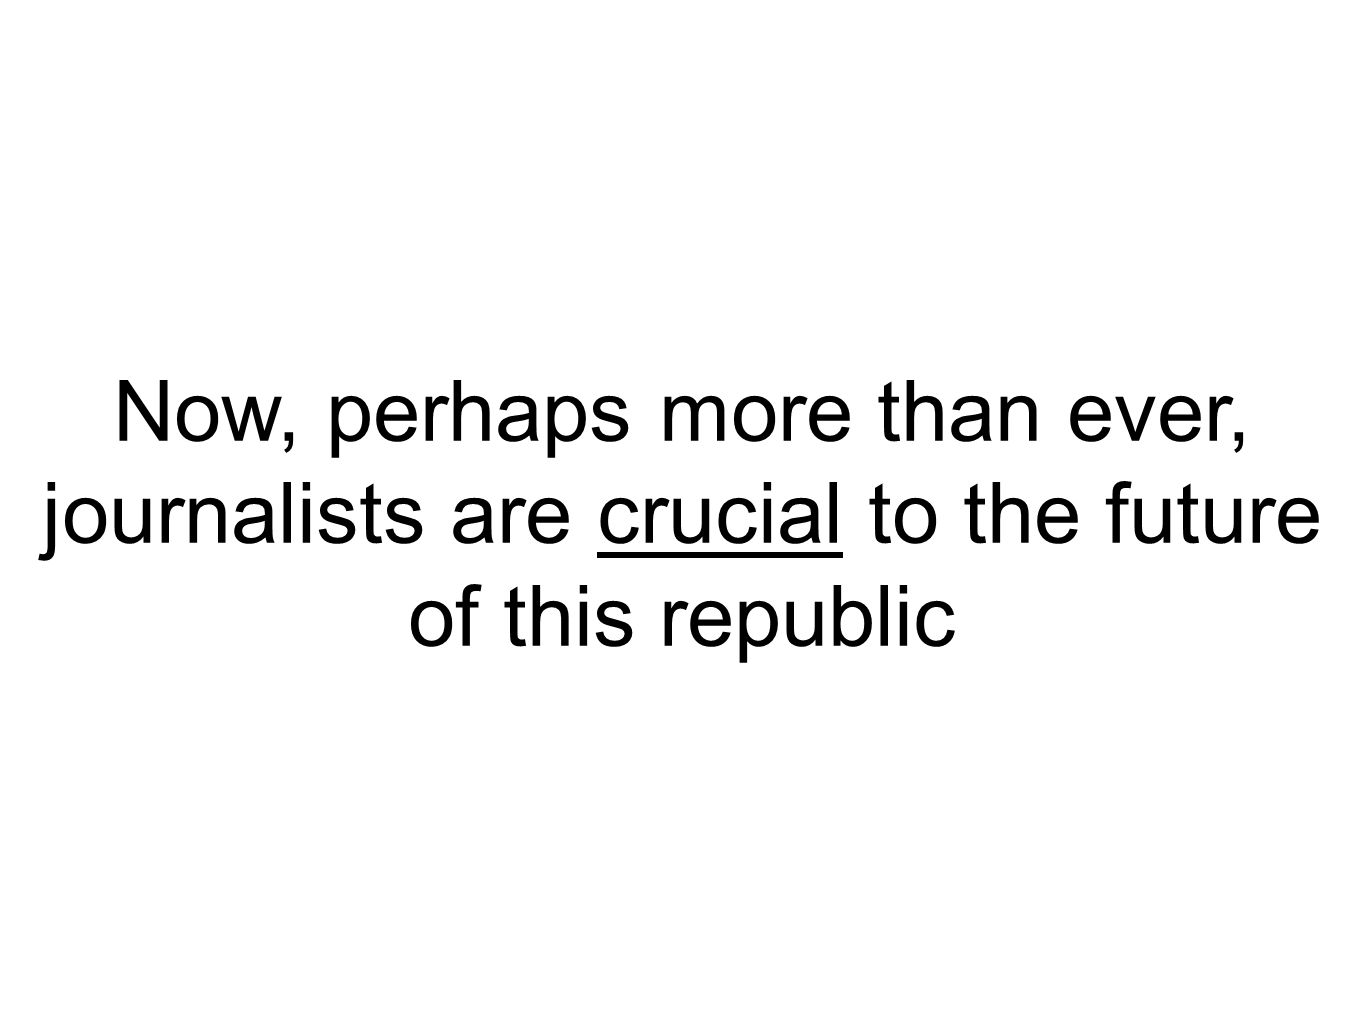 Now, perhaps more than ever, journalists are crucial to the future of this republic